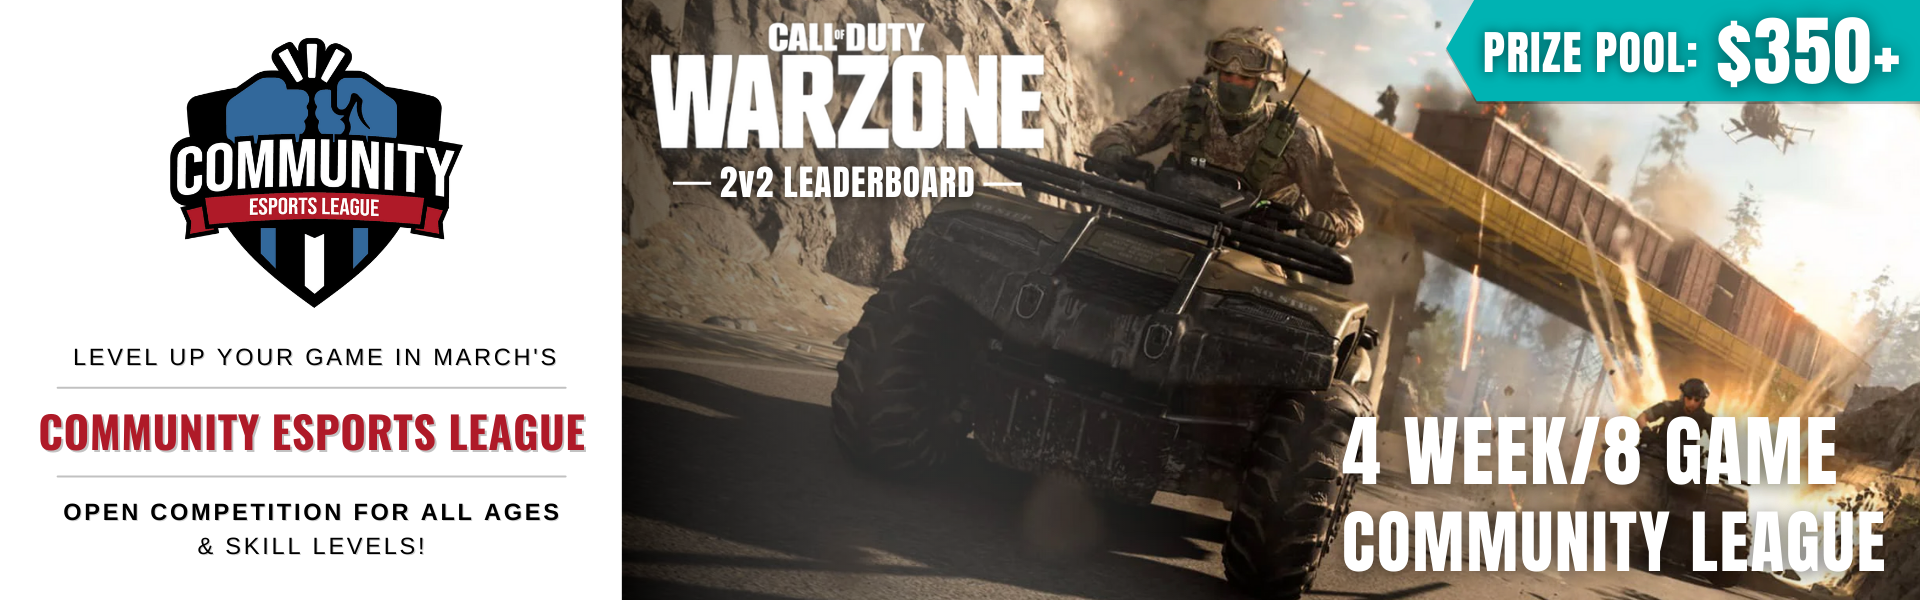 Call of Duty Warzone: March